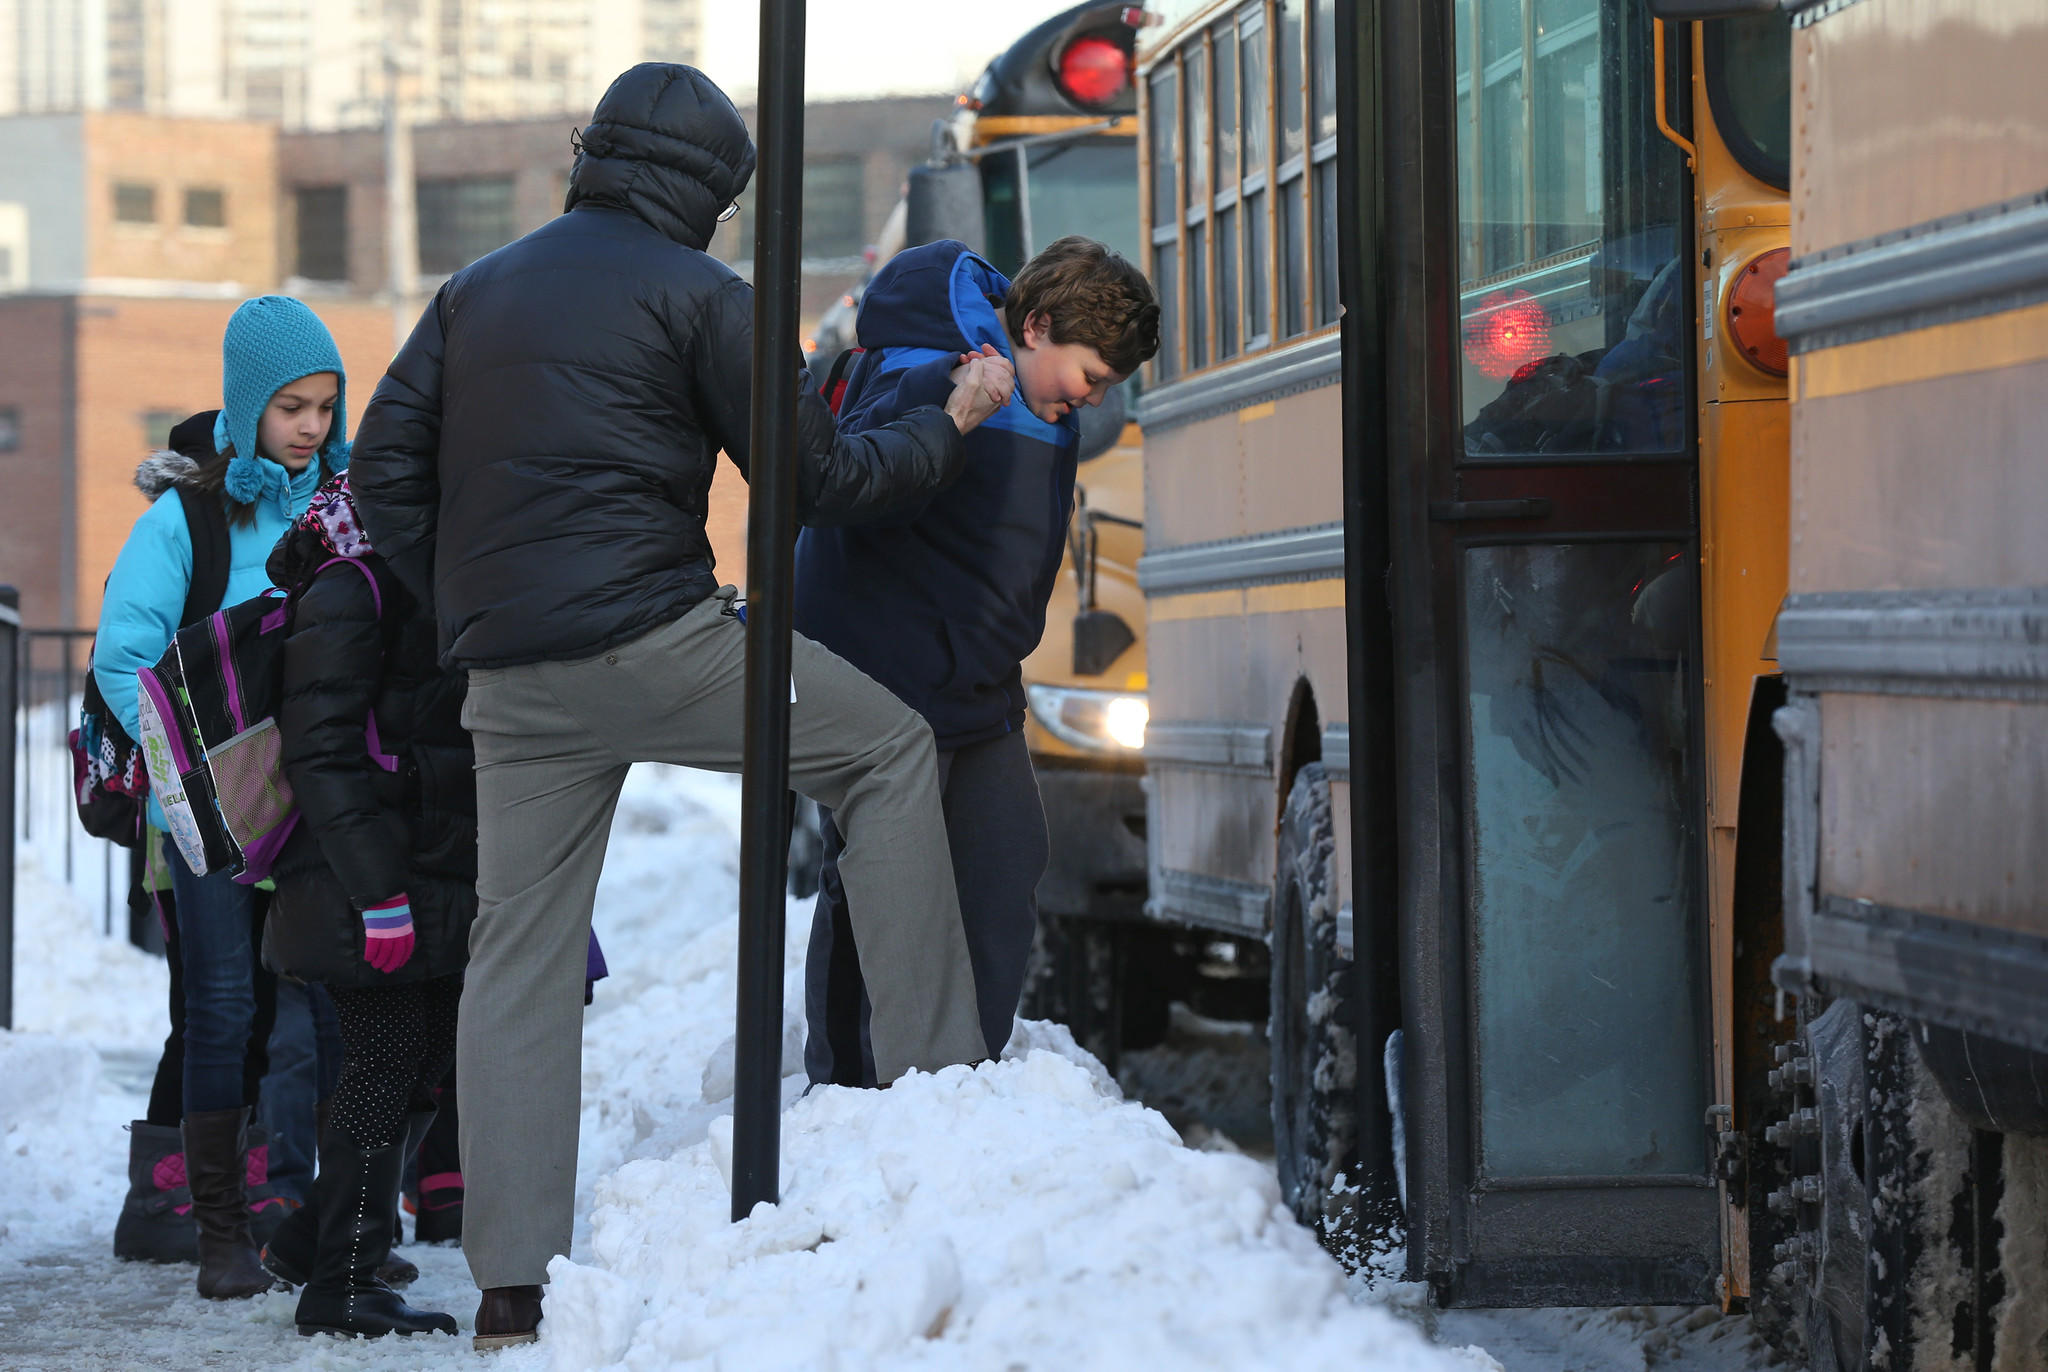 Spanish teacher Zach Schroeder helps students navigate the snow and onto buses after class at Skinner North Classical School, 640 W. Scott St. on Wednesday.